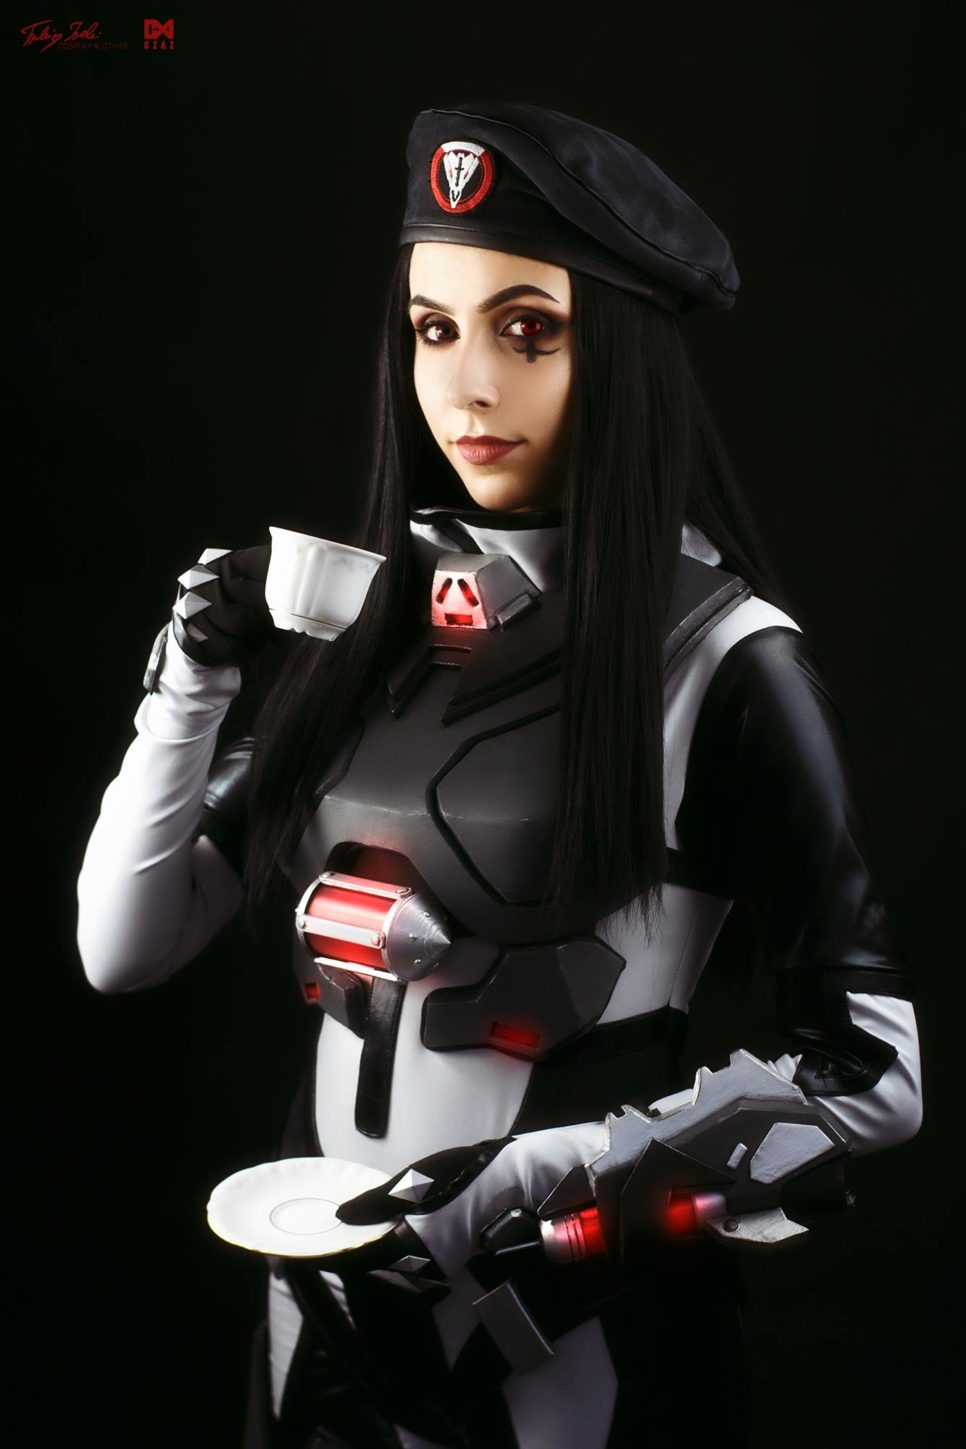 Blackwatch Ana Captain Amari | Overwatch